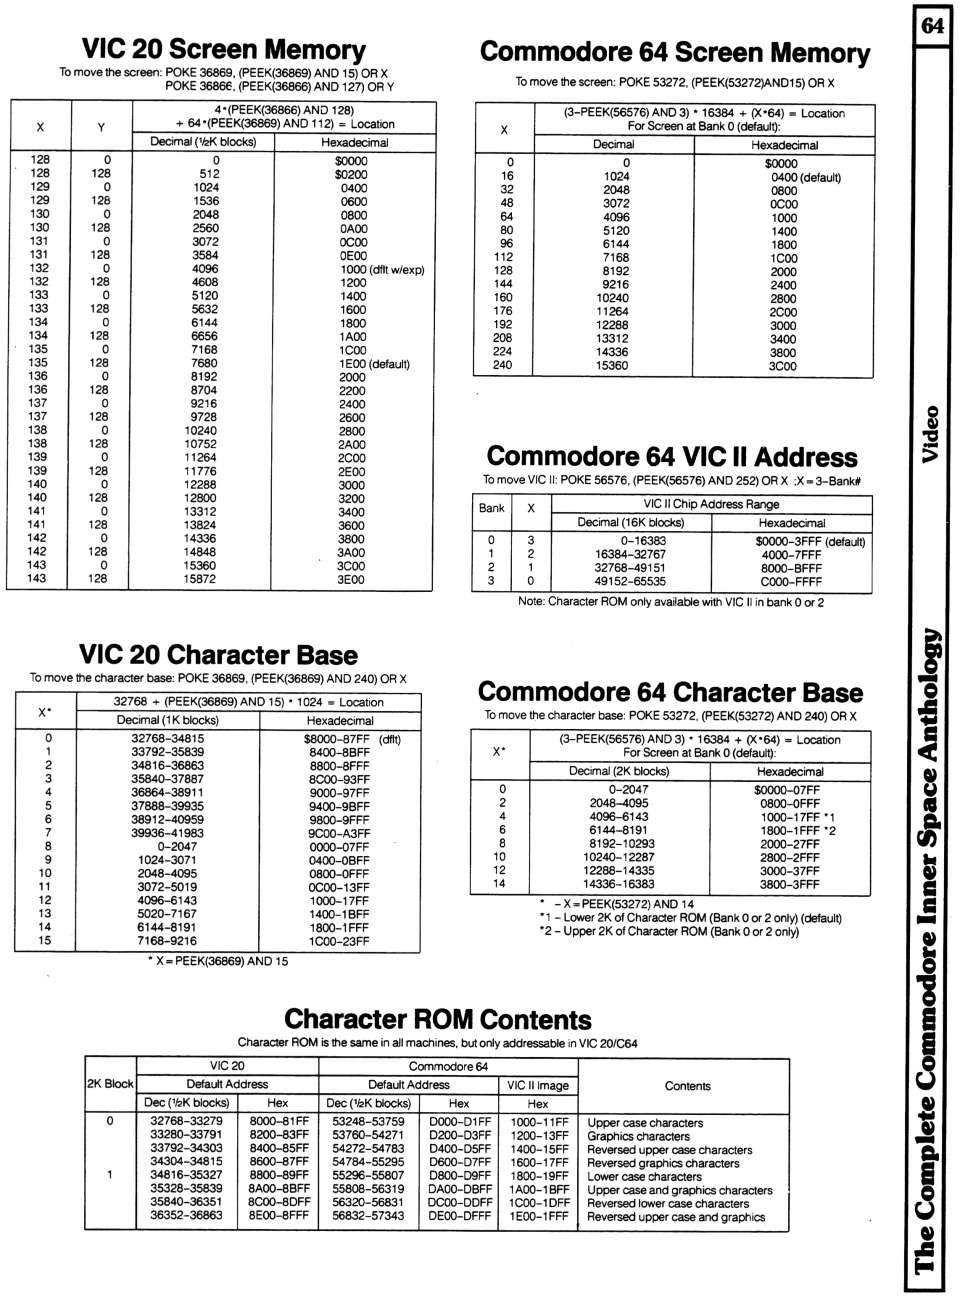 [960×1300 Video Section: VIC 20 Screen Memory Addresses, VIC 20 Character Base Addresses, Commodore 64 Screen Memory, Commodore 64 VIC II Chip Addresses, Commodore 64 Character Base, Character ROM Contents]